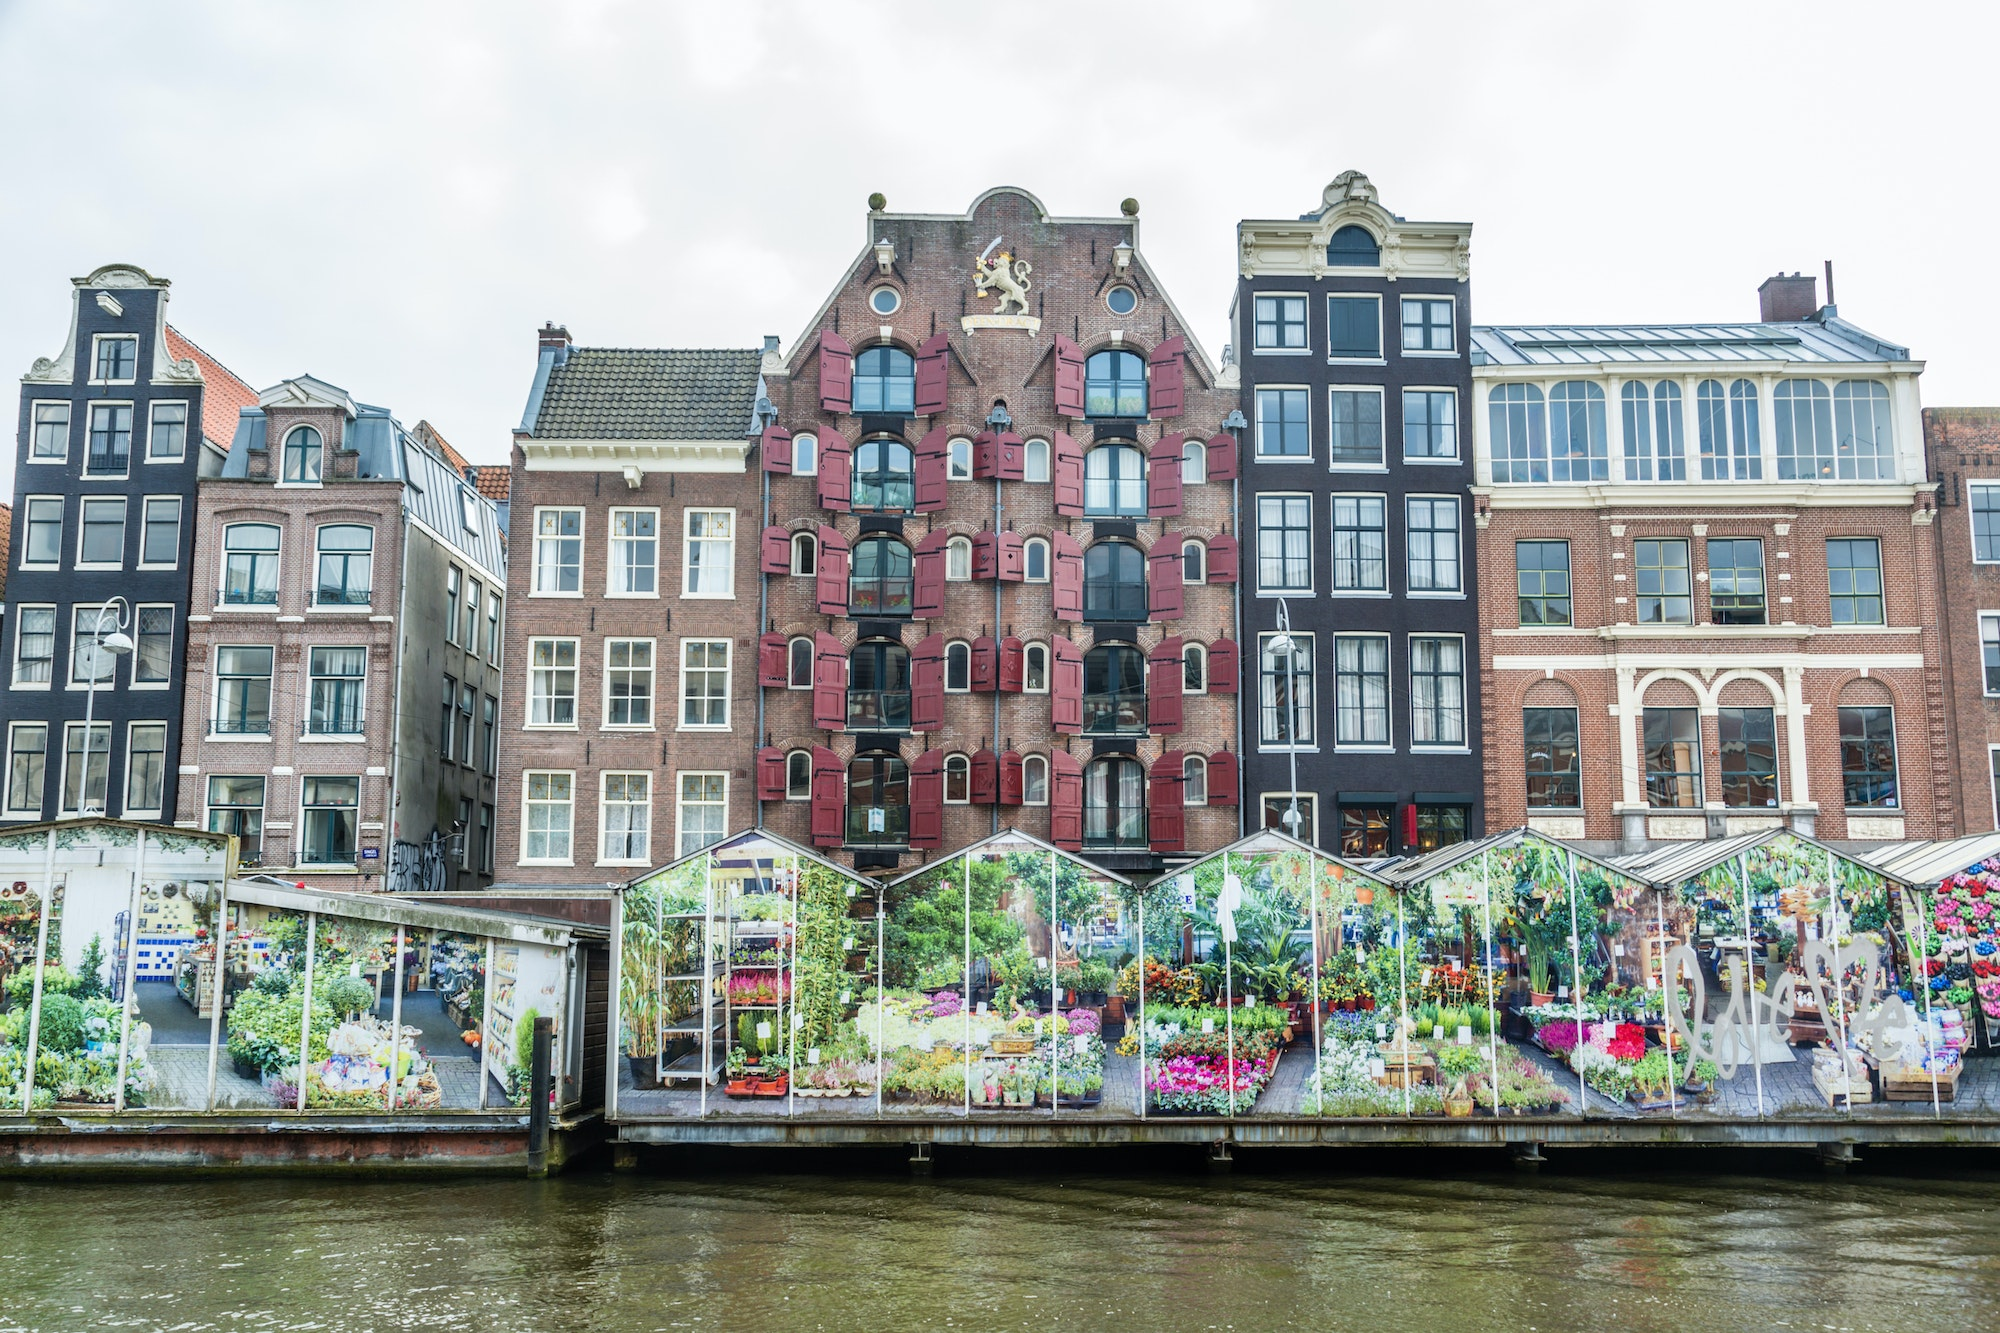 Founded in 1862, Bloemenmarkt is the world's only floating flower market.